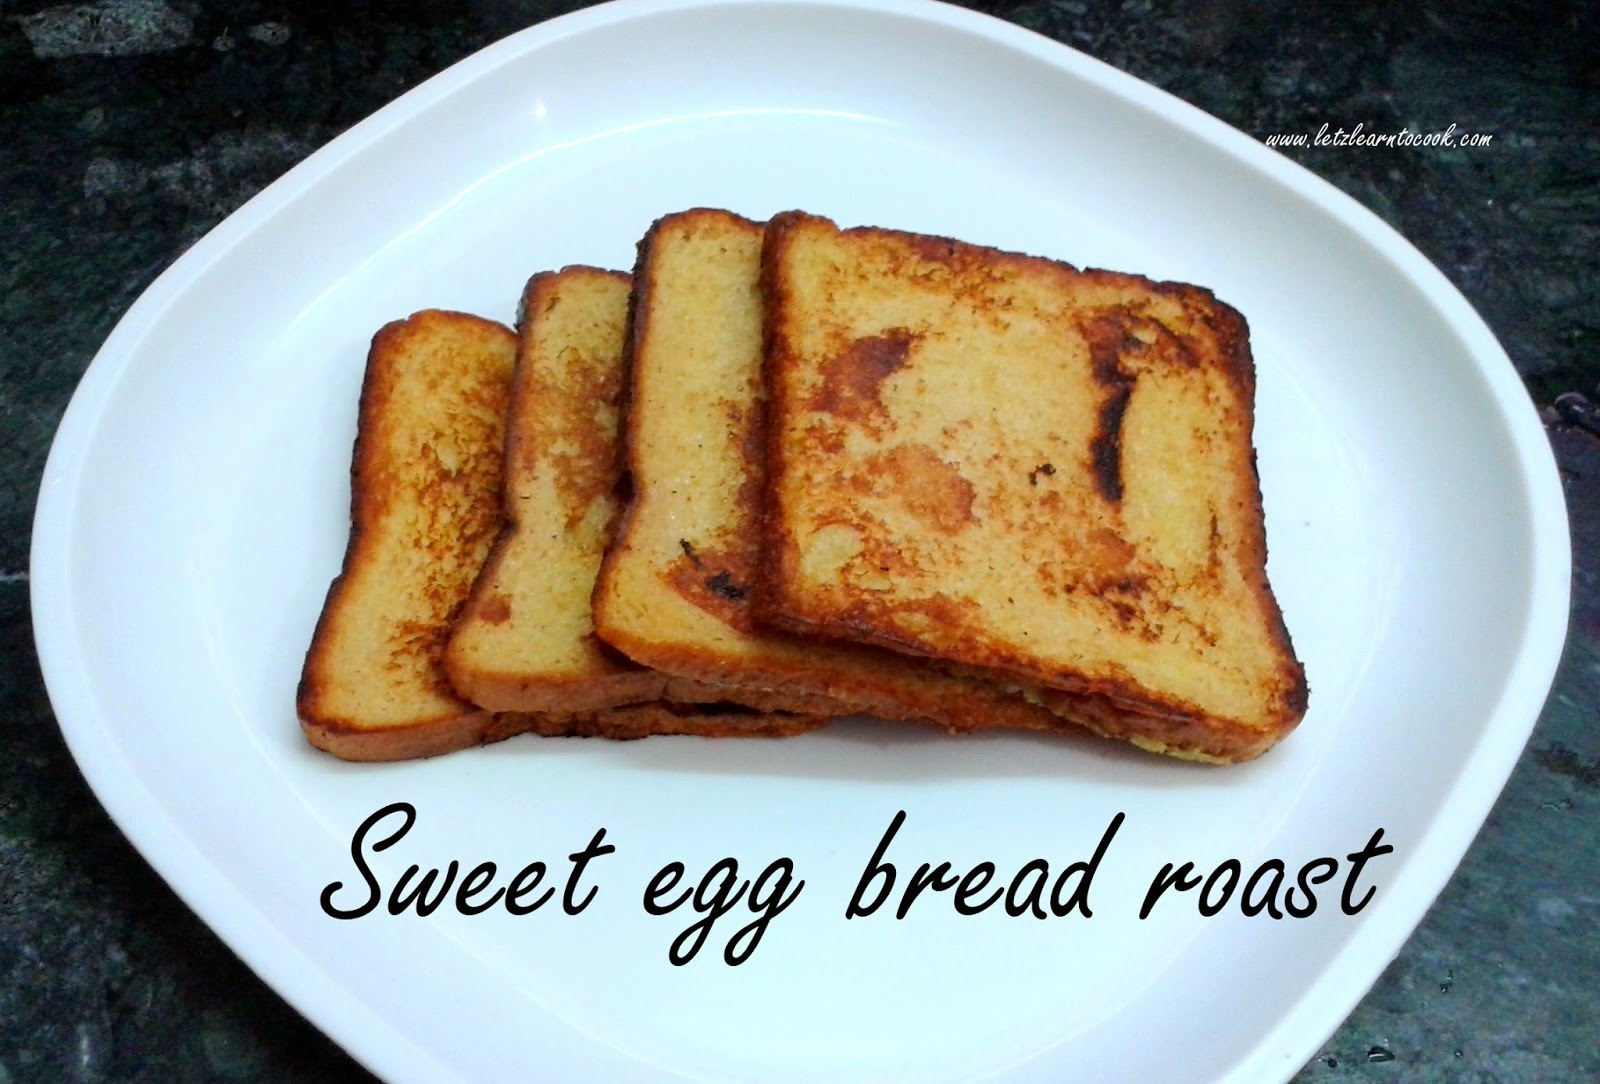 Sweet egg bread roast